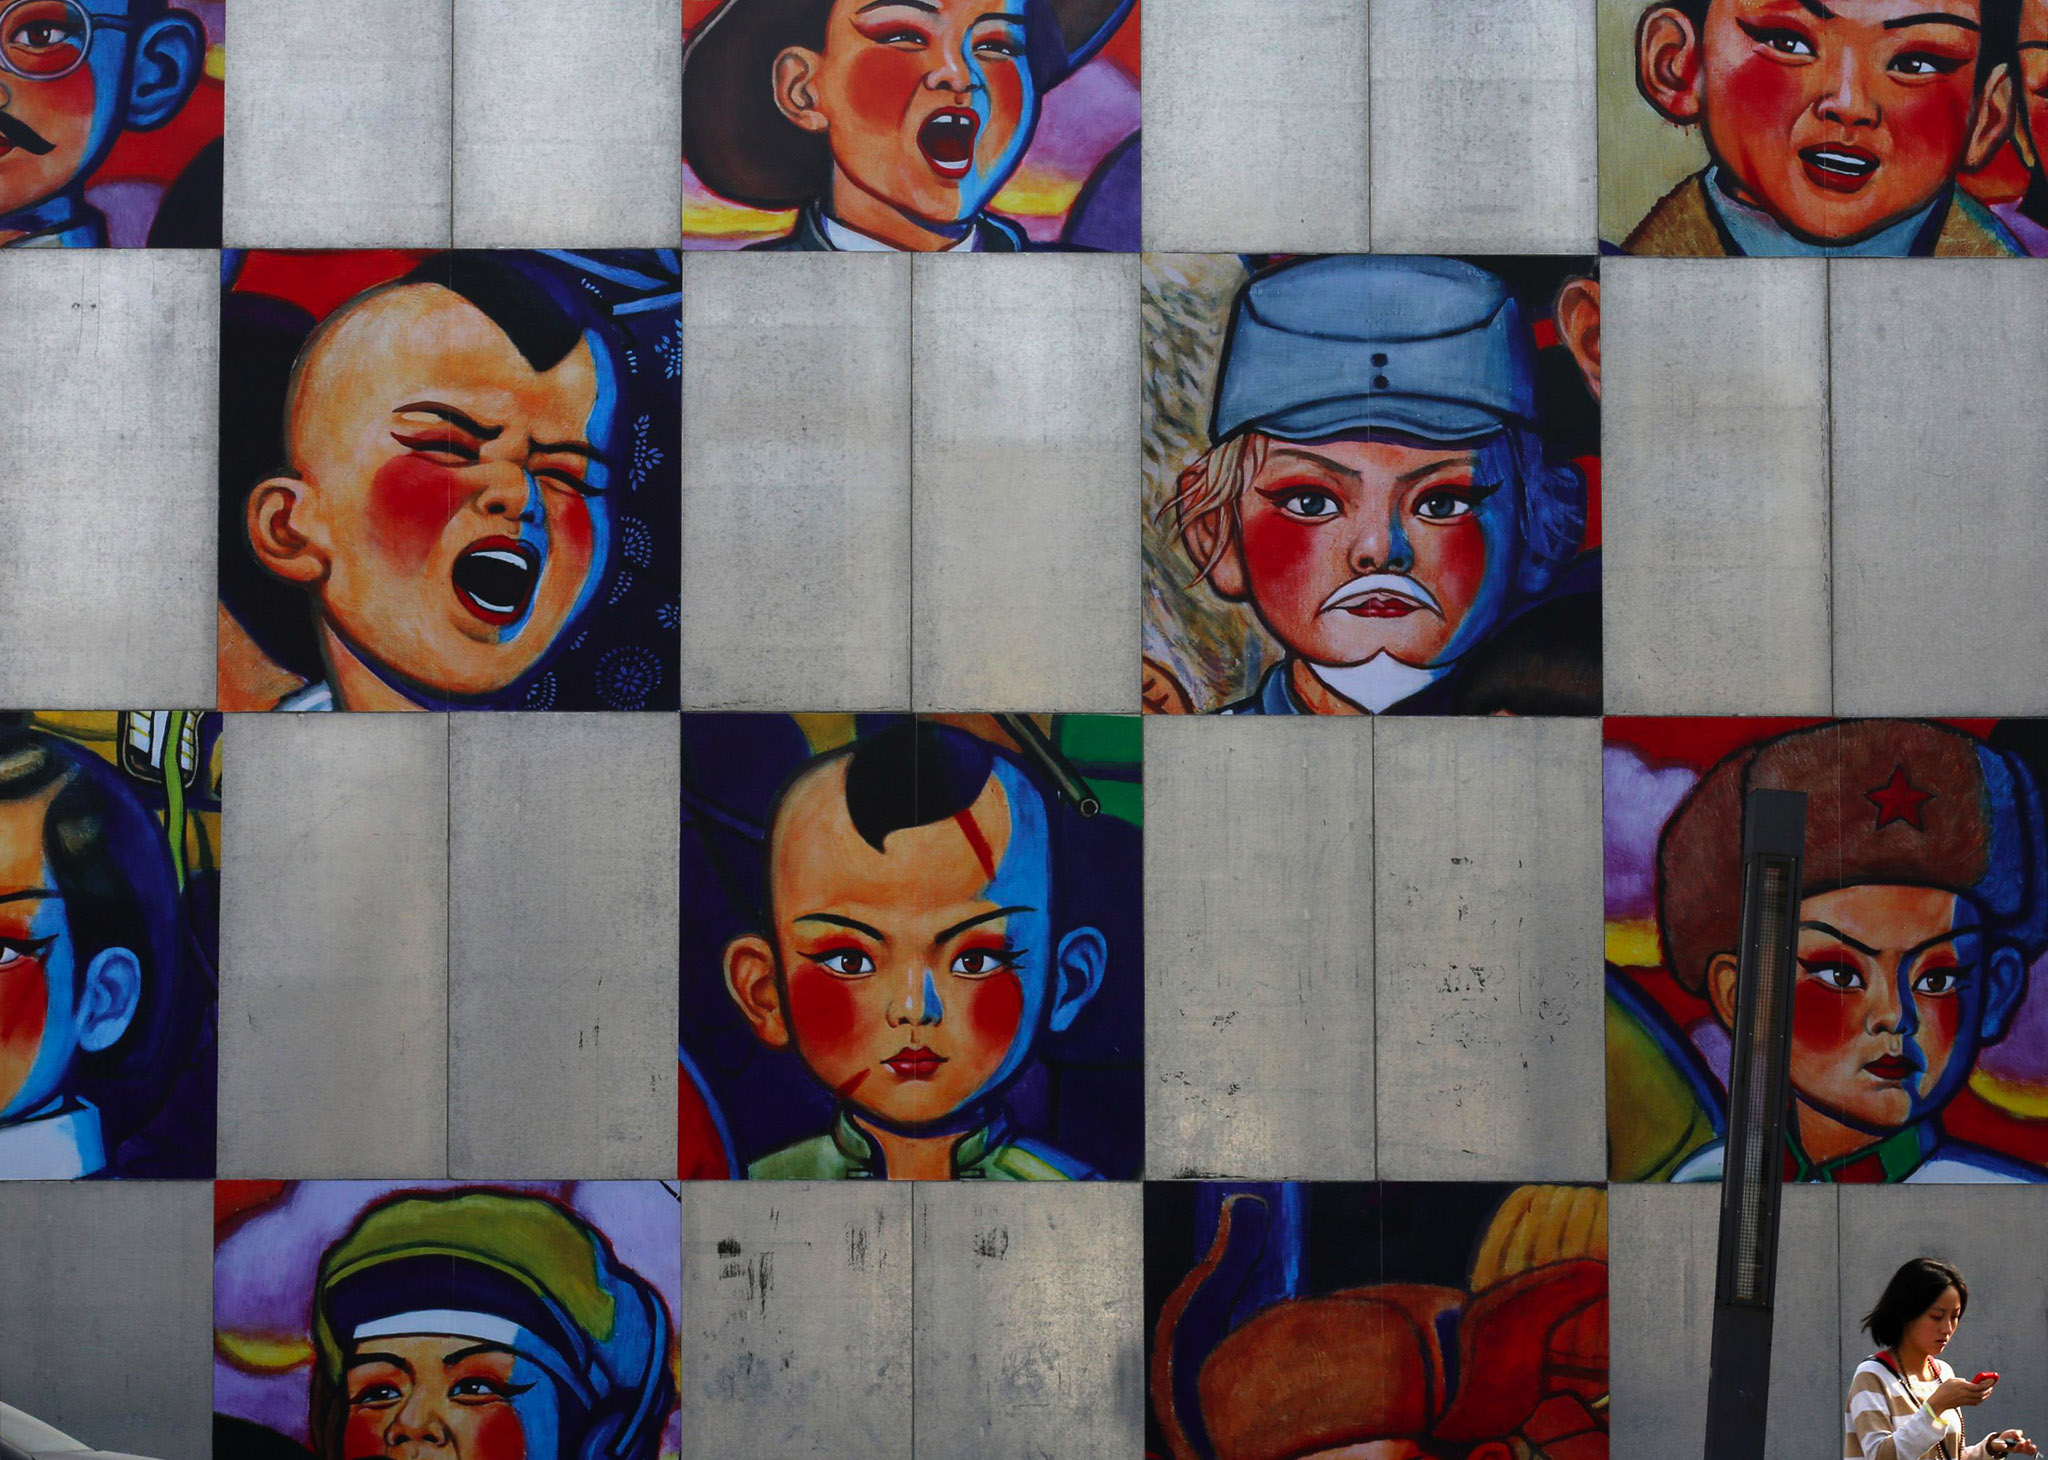 A woman walks past a gallery's wall bearing the paintings by Song Changqing during the 2013 Beijing 798 Art Festival at the 798 Art Zone in Beijing. The art zone, originally an unused factory, was transformed into a landmark of contemporary art in Beijing in the 1990s. The annual art festival goes on till the 20th October.